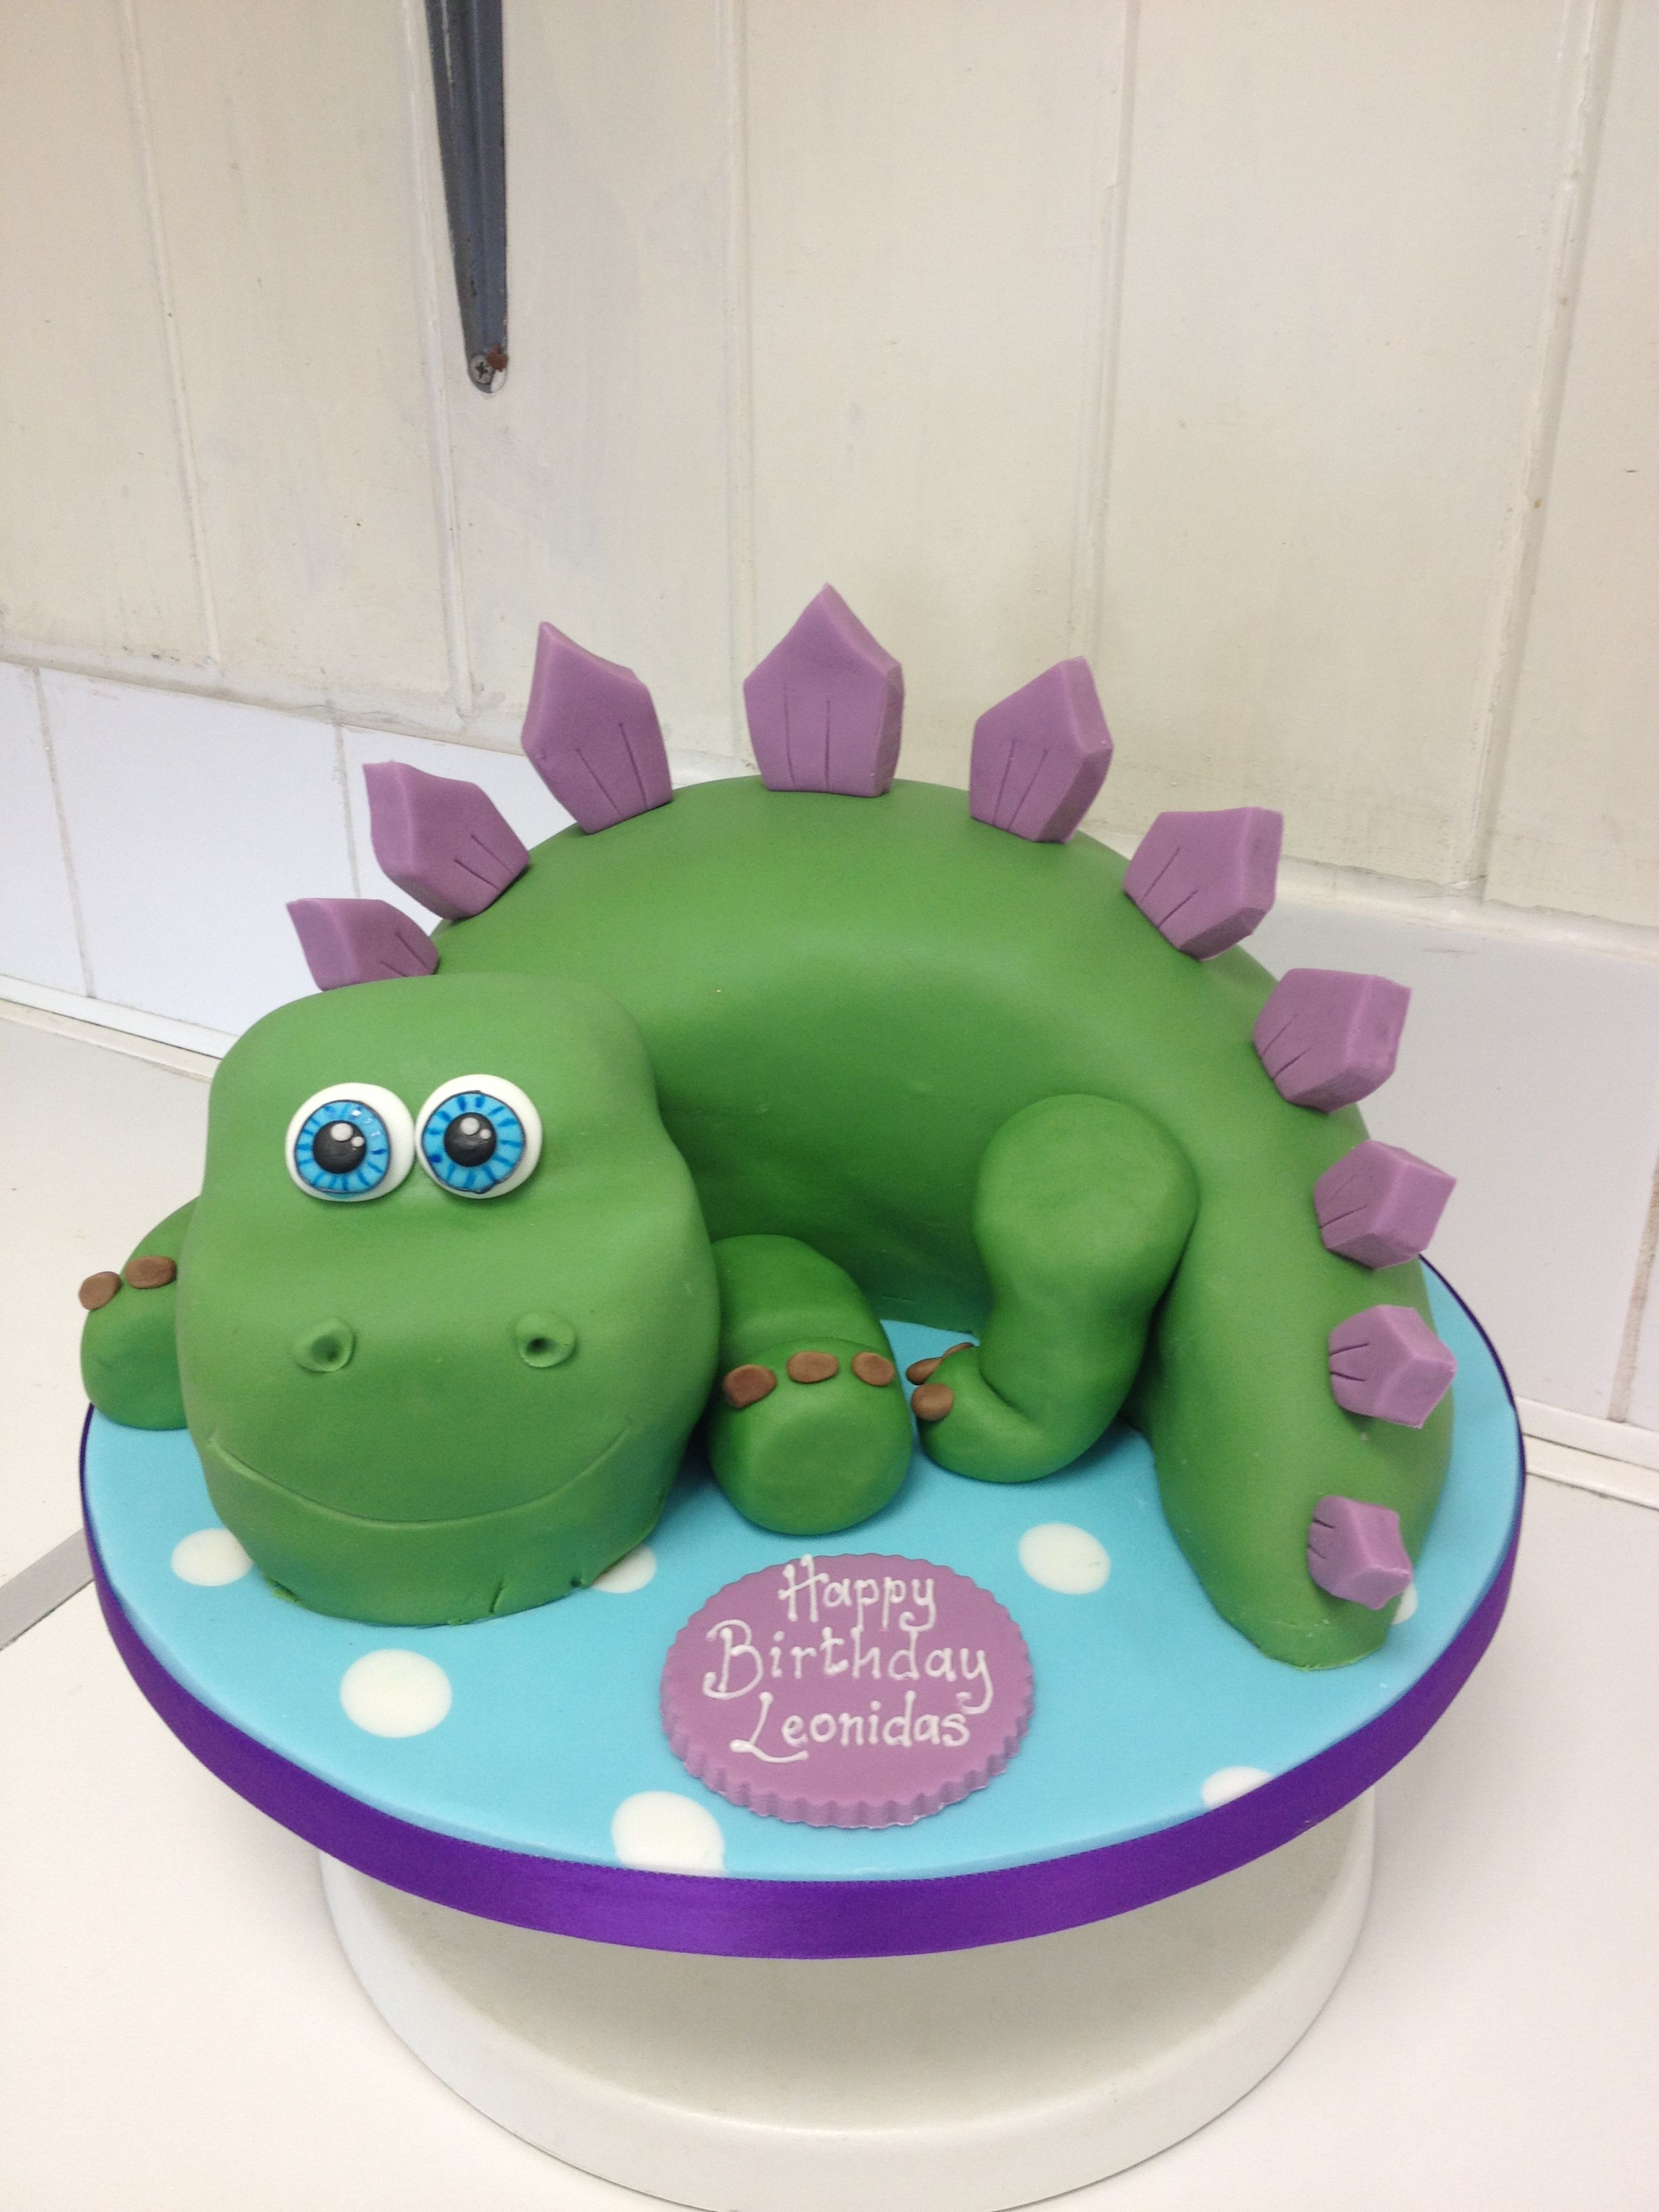 Kuchen Deko Name Dinosaur Cake What Kind Of Name Is Leonidas Evan 4th Bday